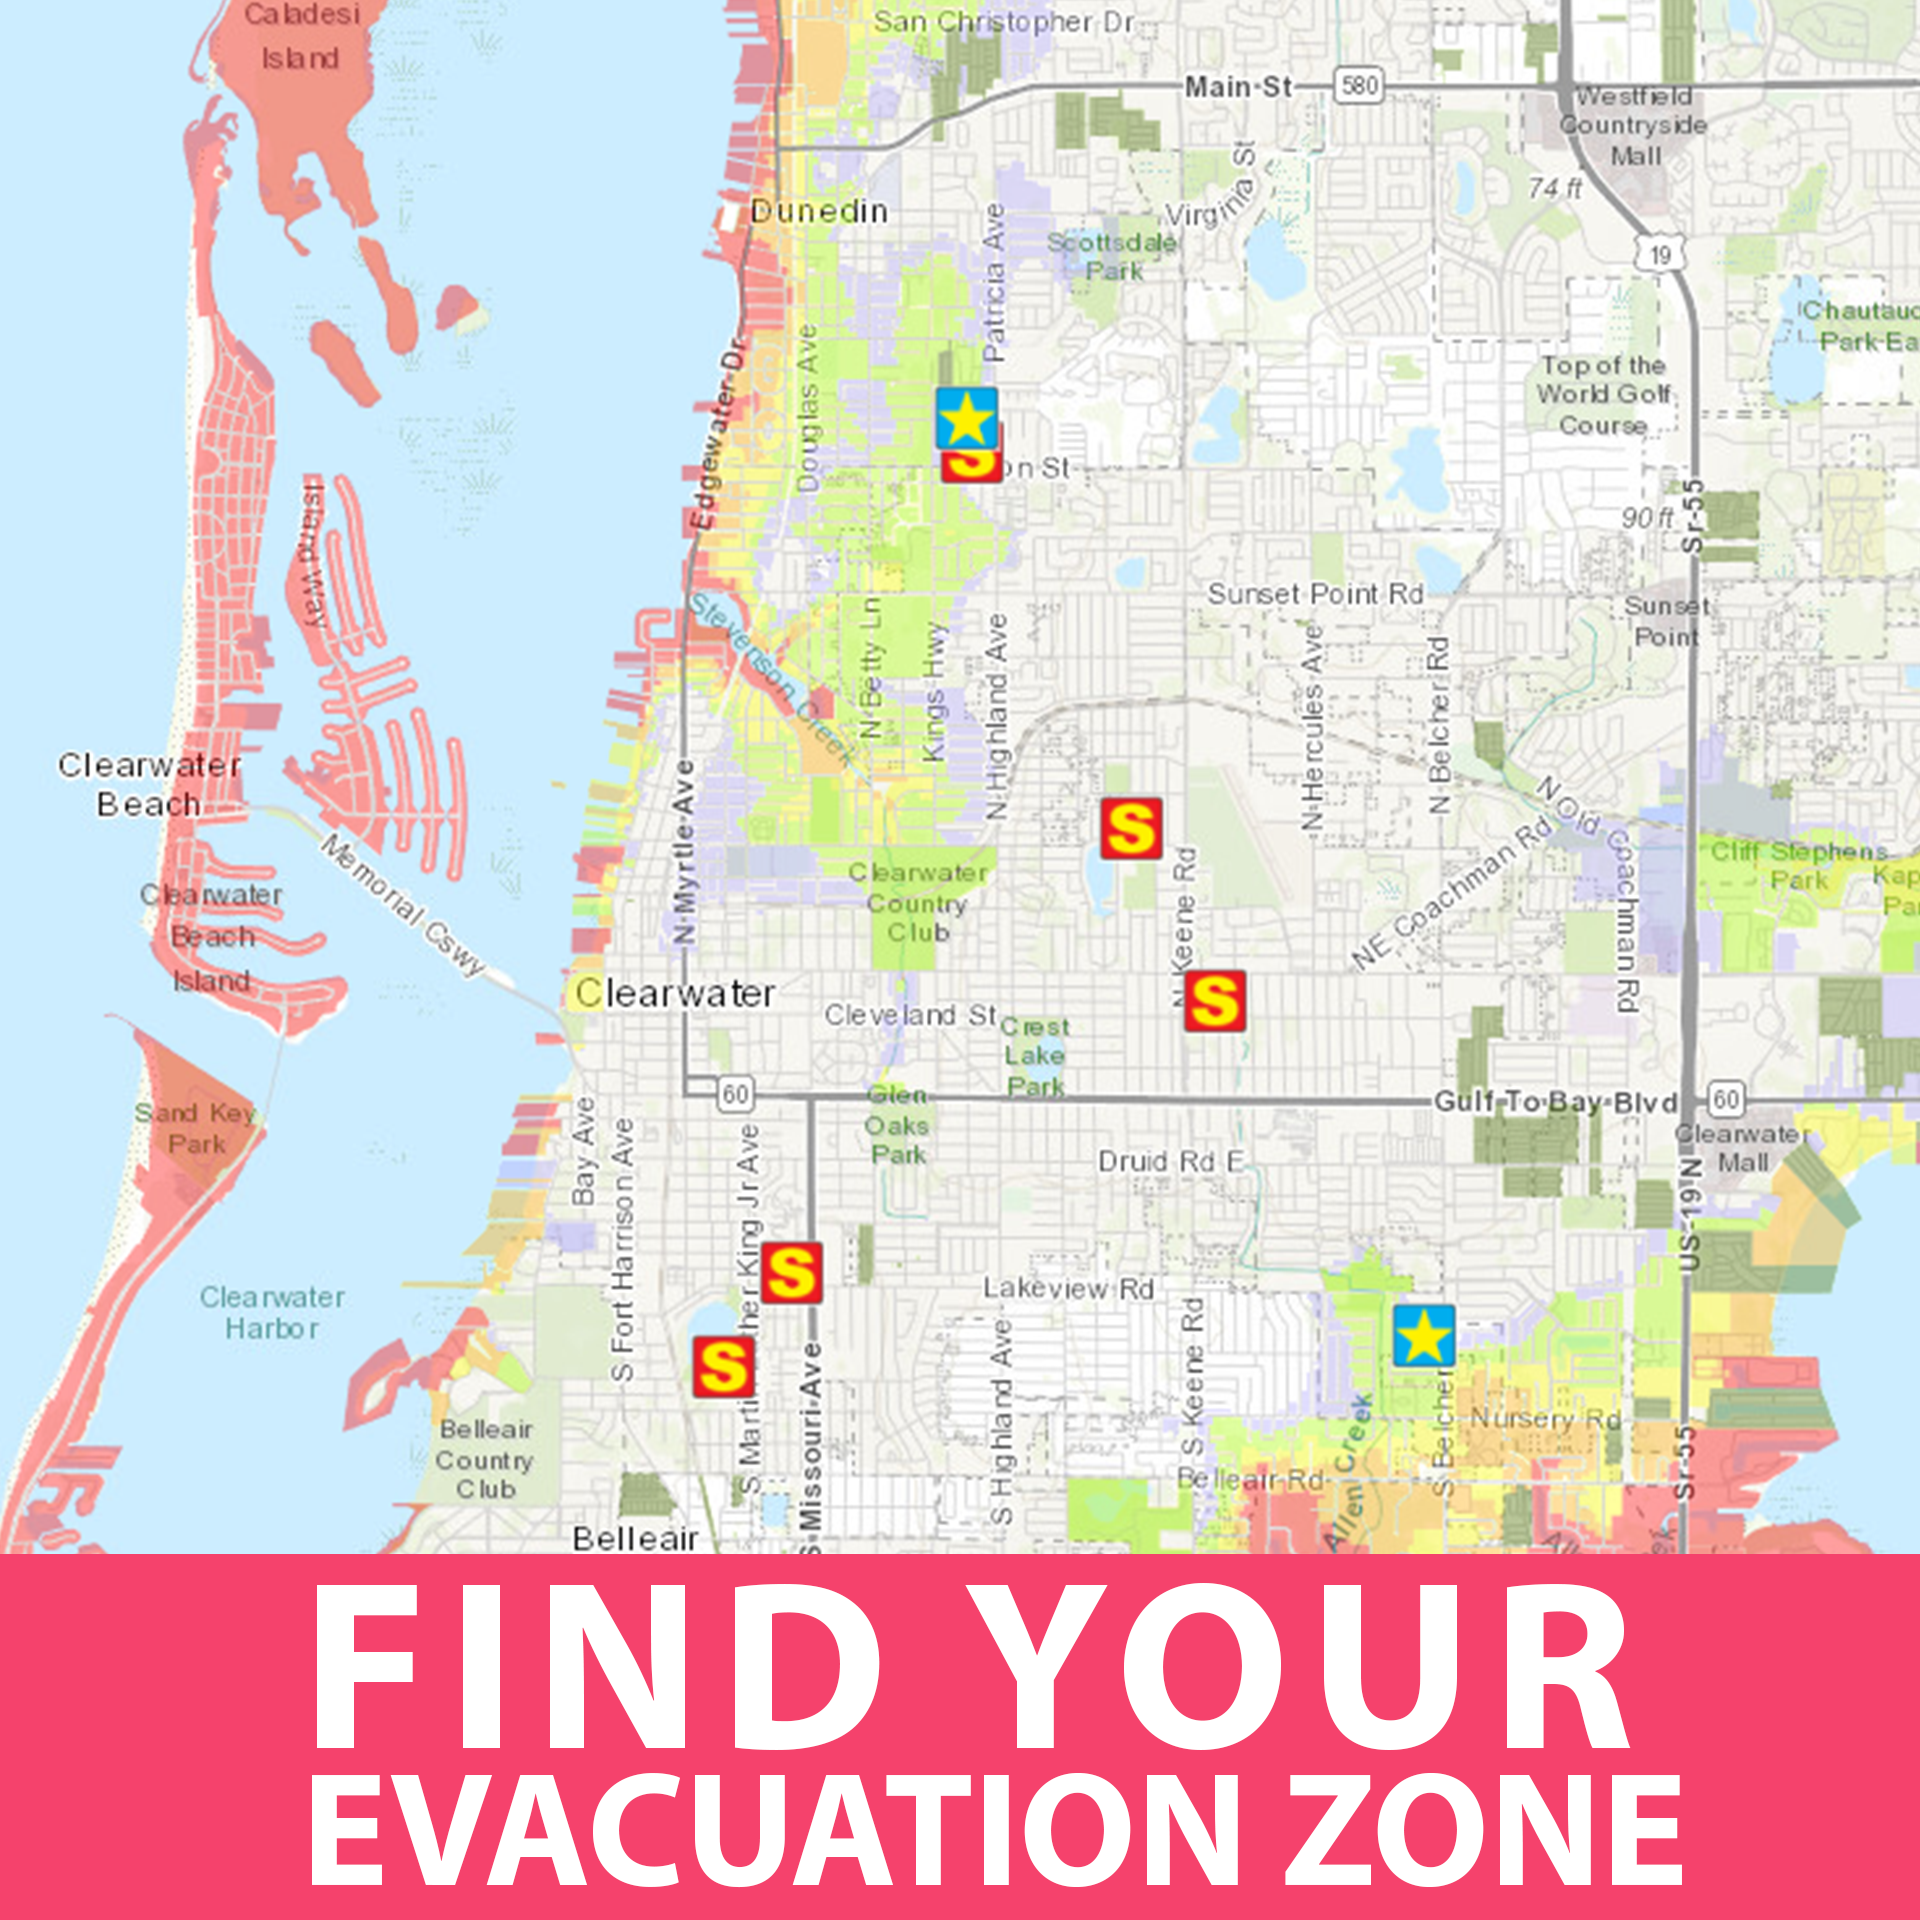 Find your evacuation zone button with map depicting the pinellas county evacuation zone. Specifically focuses on the Clearwater area.